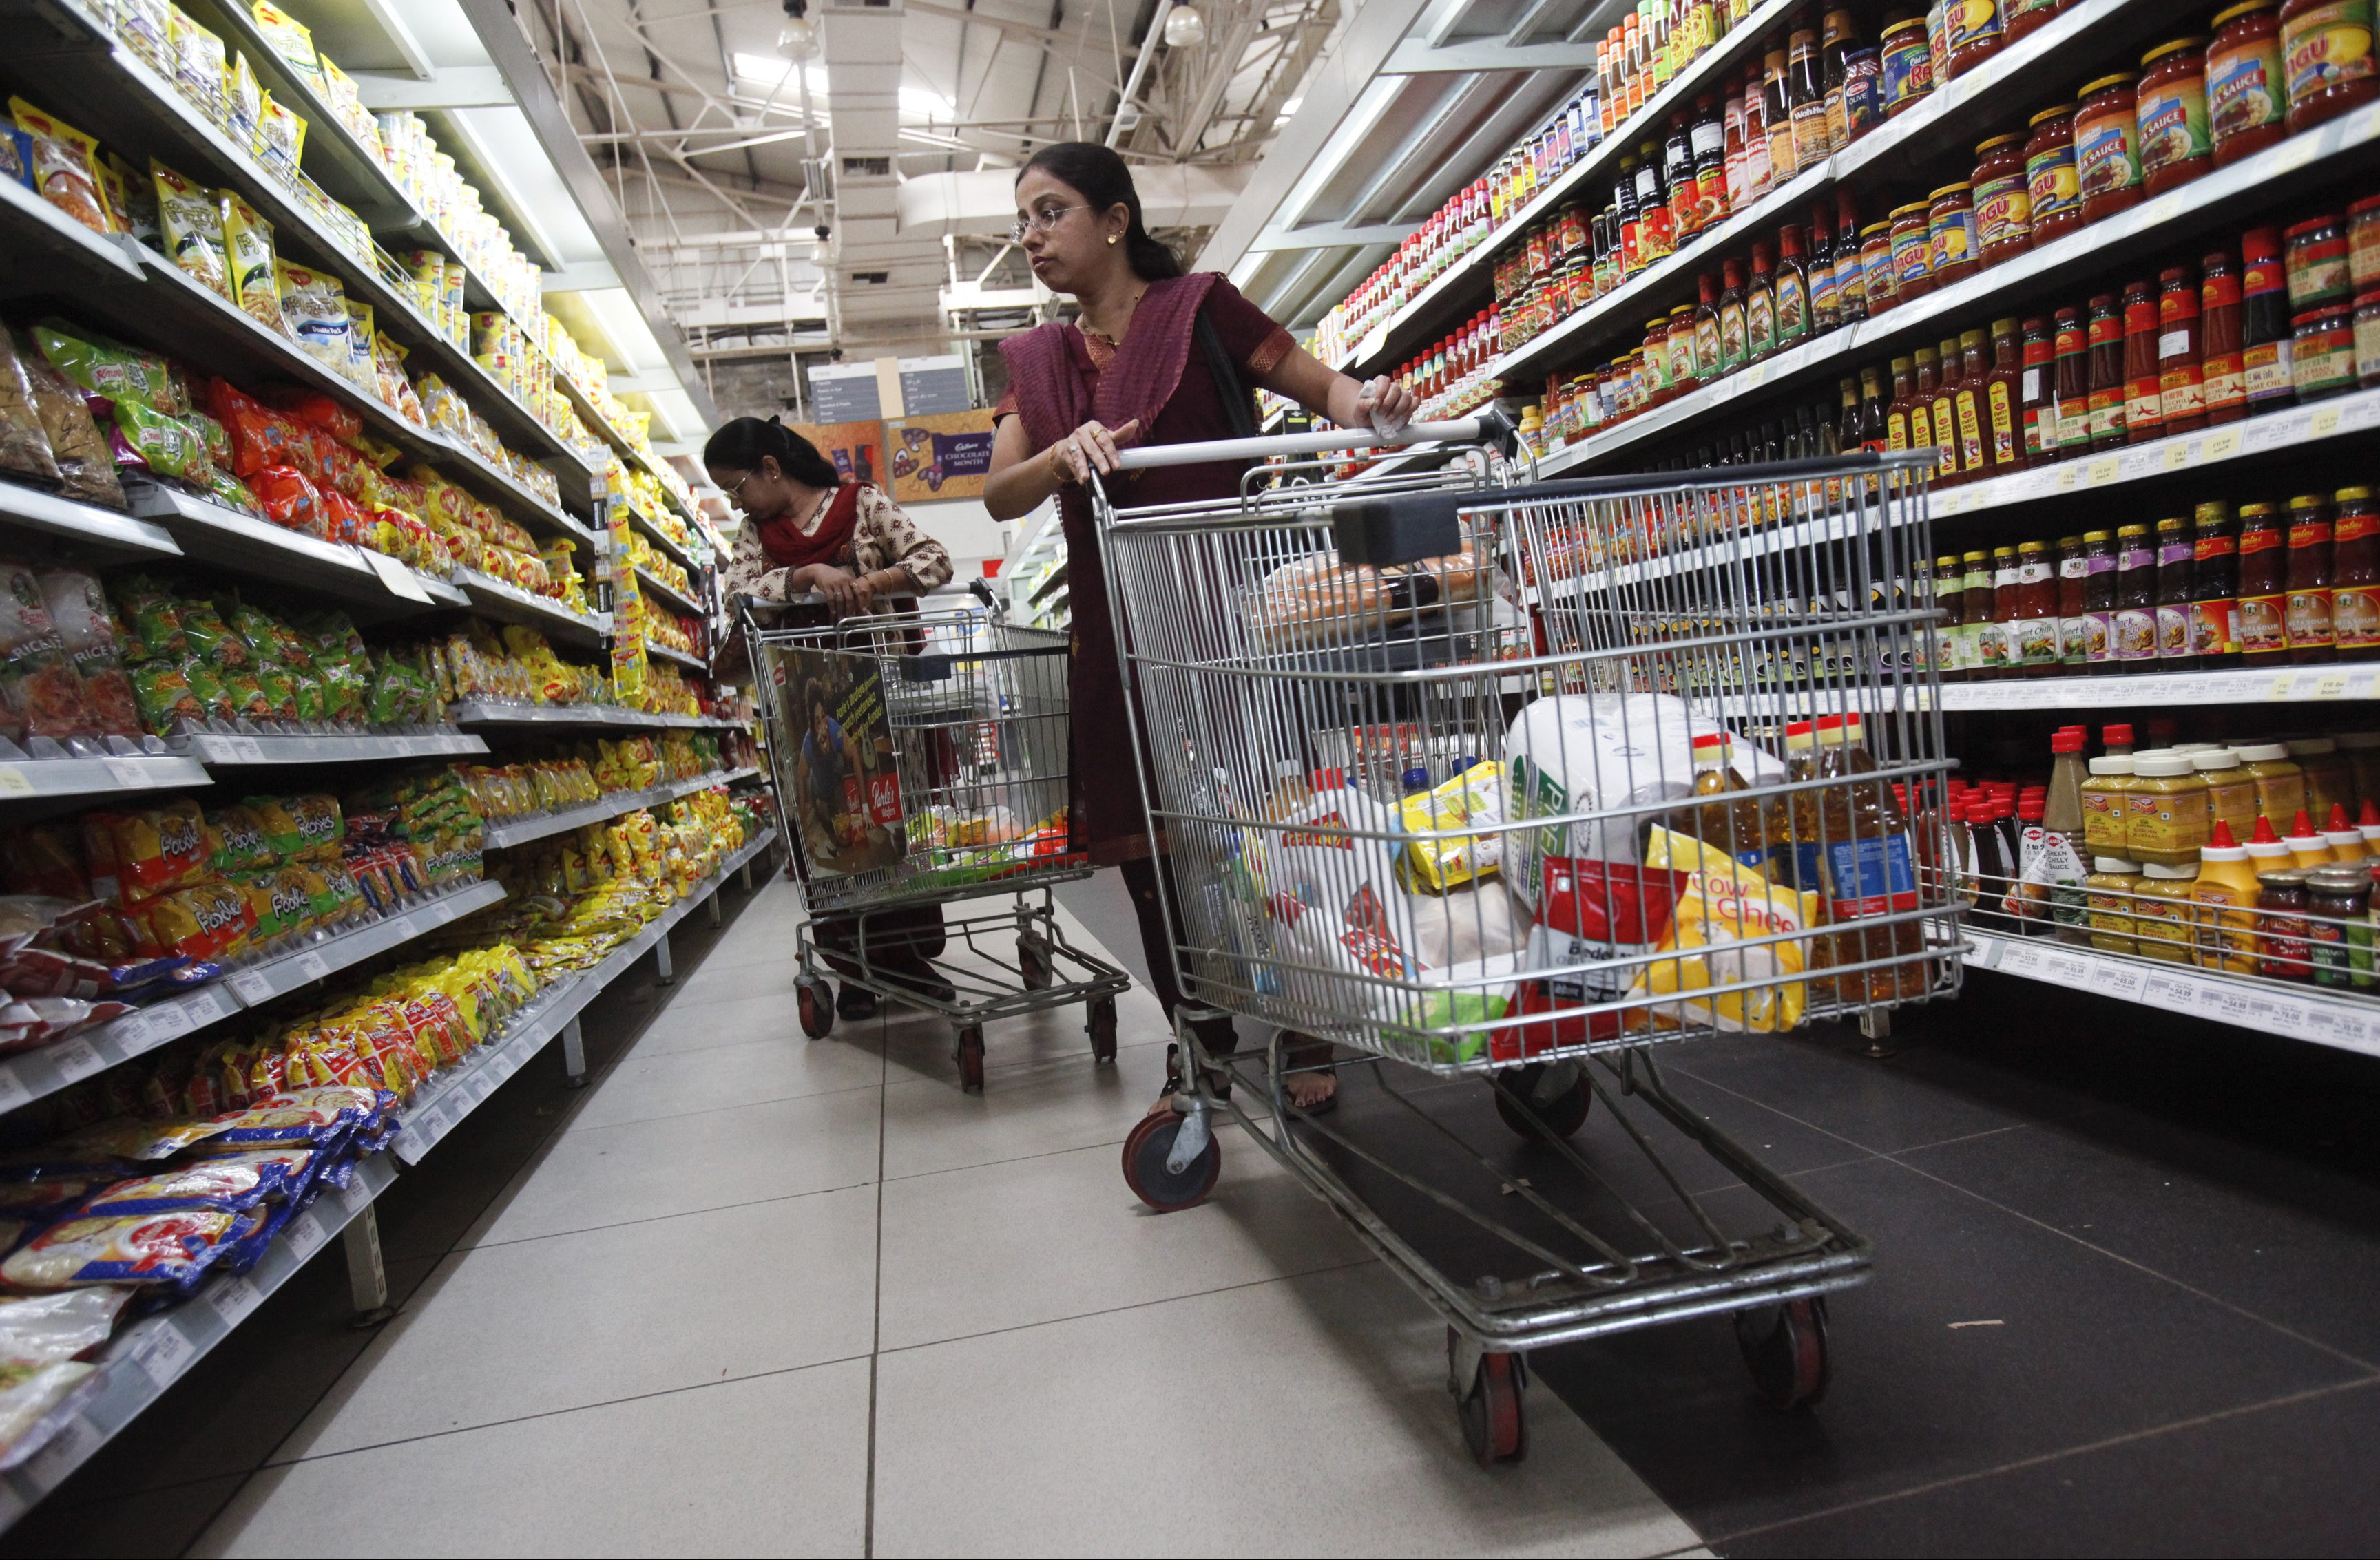 Women shop for instant noodles at a retail supermarket in Mumbai March 16, 2012. The Indian government played it safe in unveiling its 2012/13 budget on Friday, pledging reforms but setting only modest targets for trimming a ballooning fiscal deficit, disappointing bond market investors. REUTERS/Vivek Prakash (INDIA - Tags: BUSINESS POLITICS) - GM1E83G1NKM01